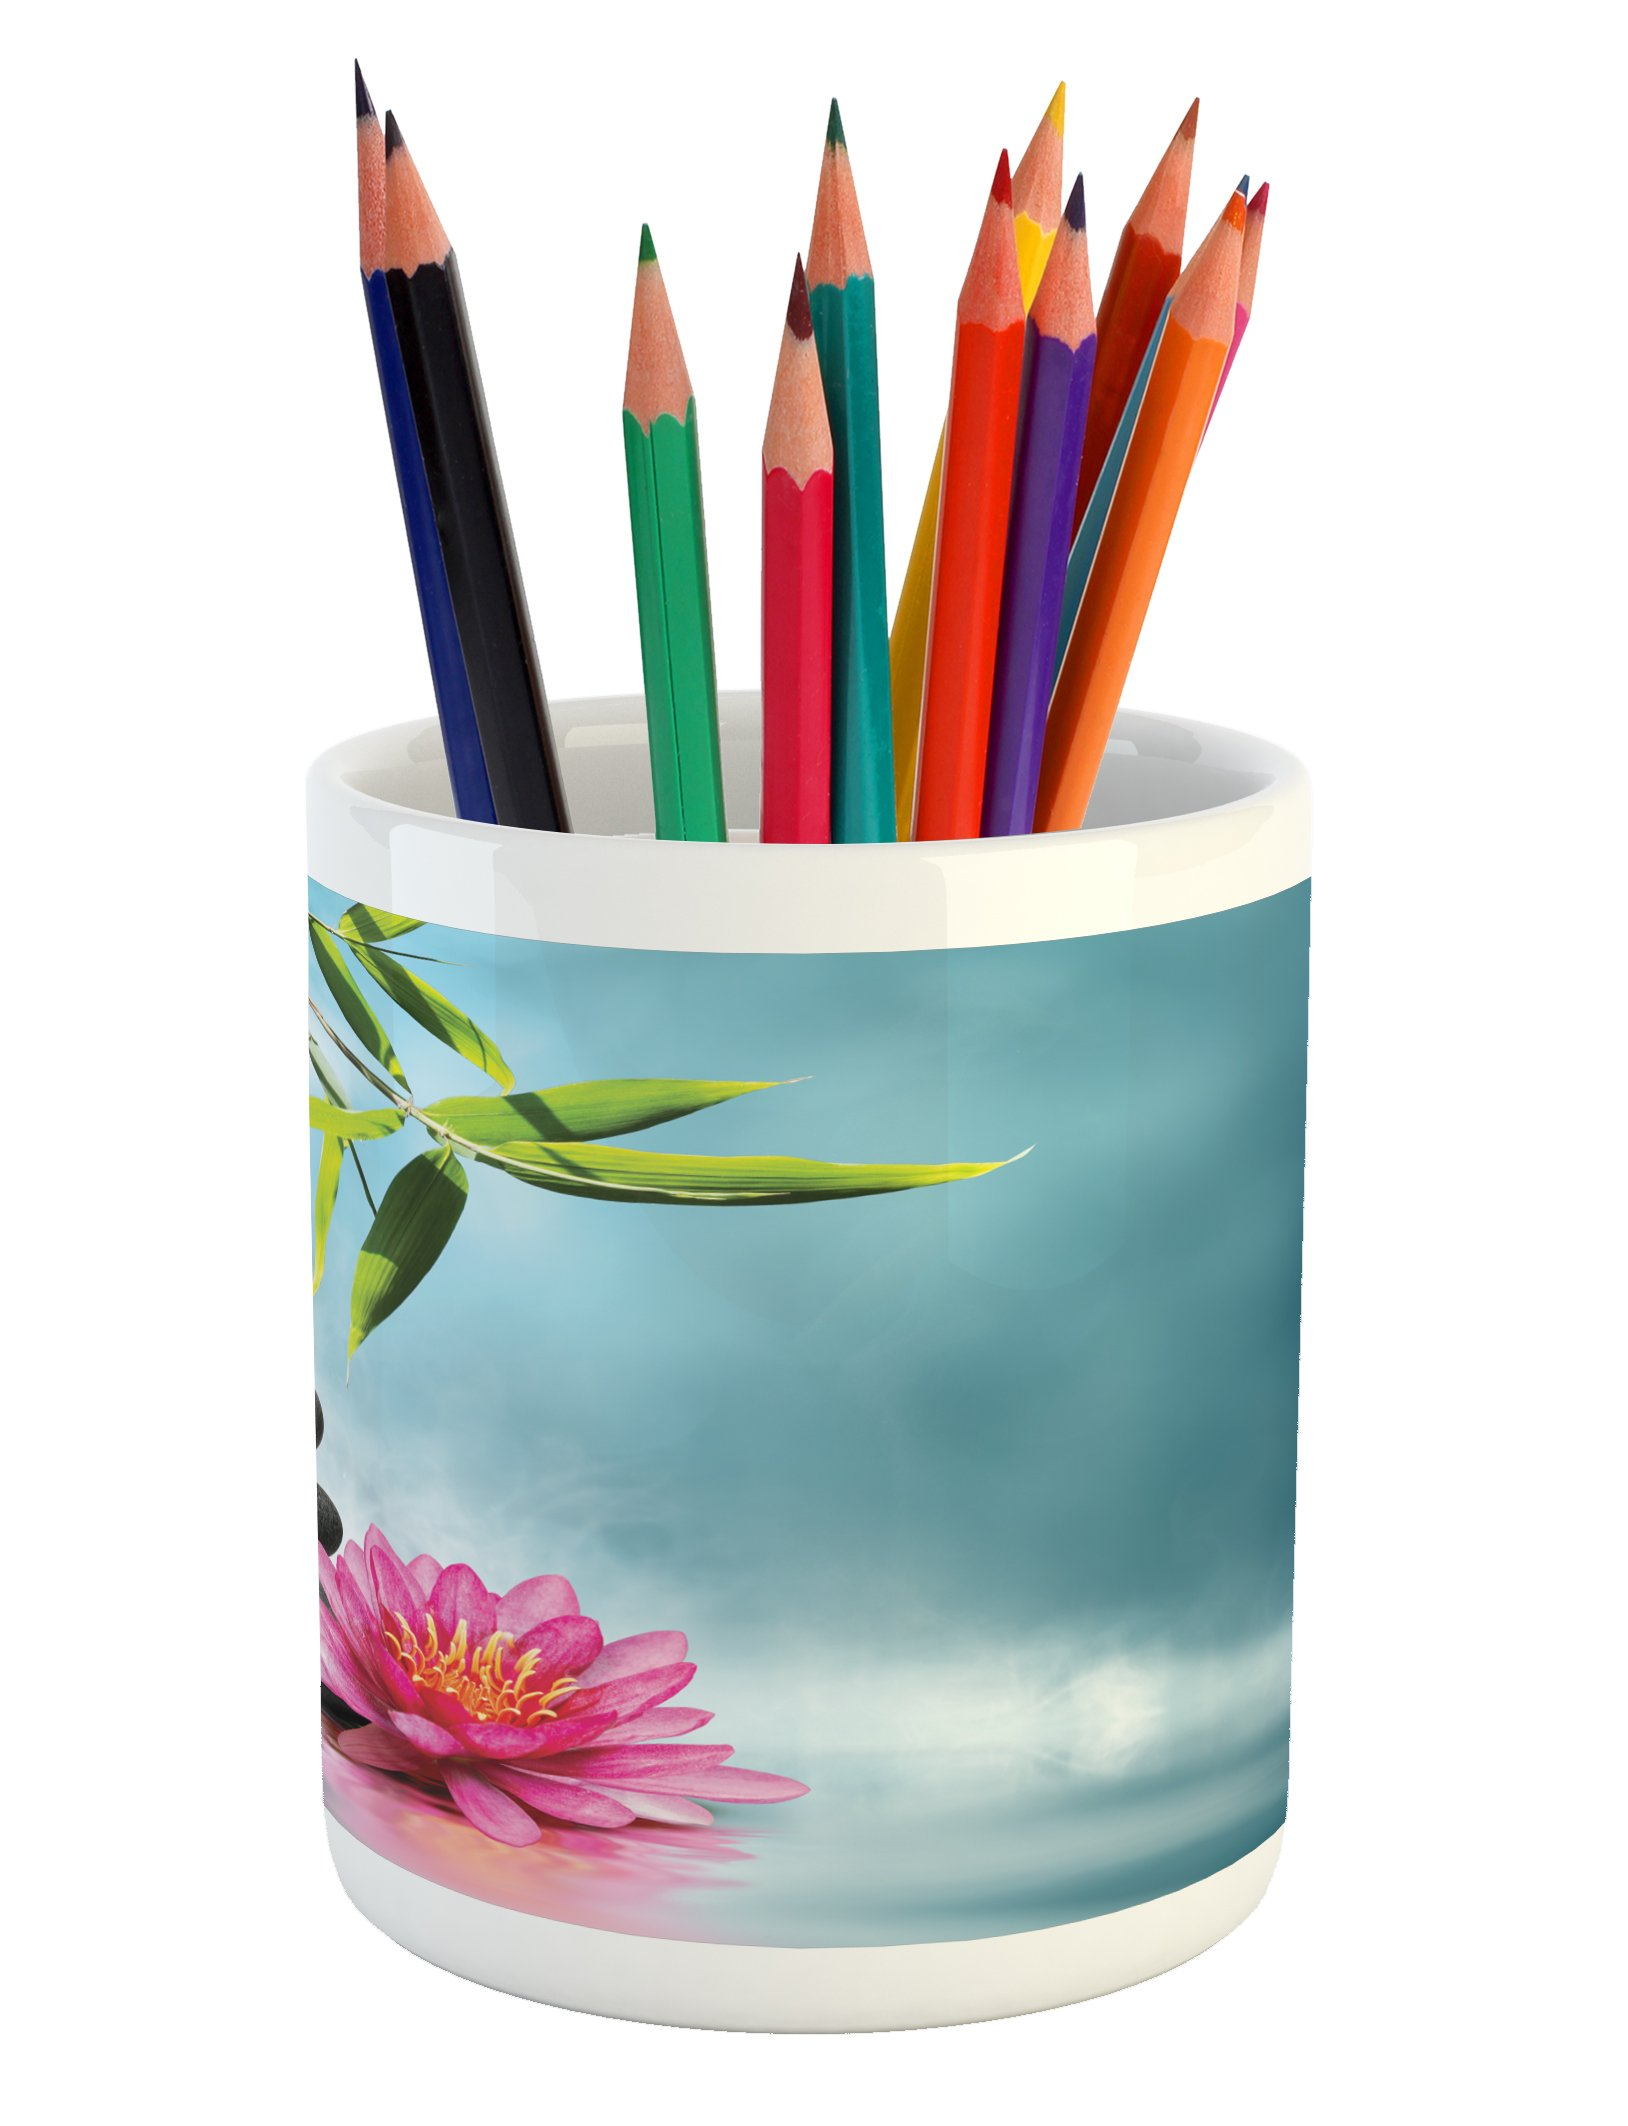 Ambesonne Spa Pencil Pen Holder, Spa Theme with Lily Lotus Flower and Rocks Yoga Style Purifying Your Soul Theme, Printed Ceramic Pencil Pen Holder for Desk Office Accessory, Blue Pink Green